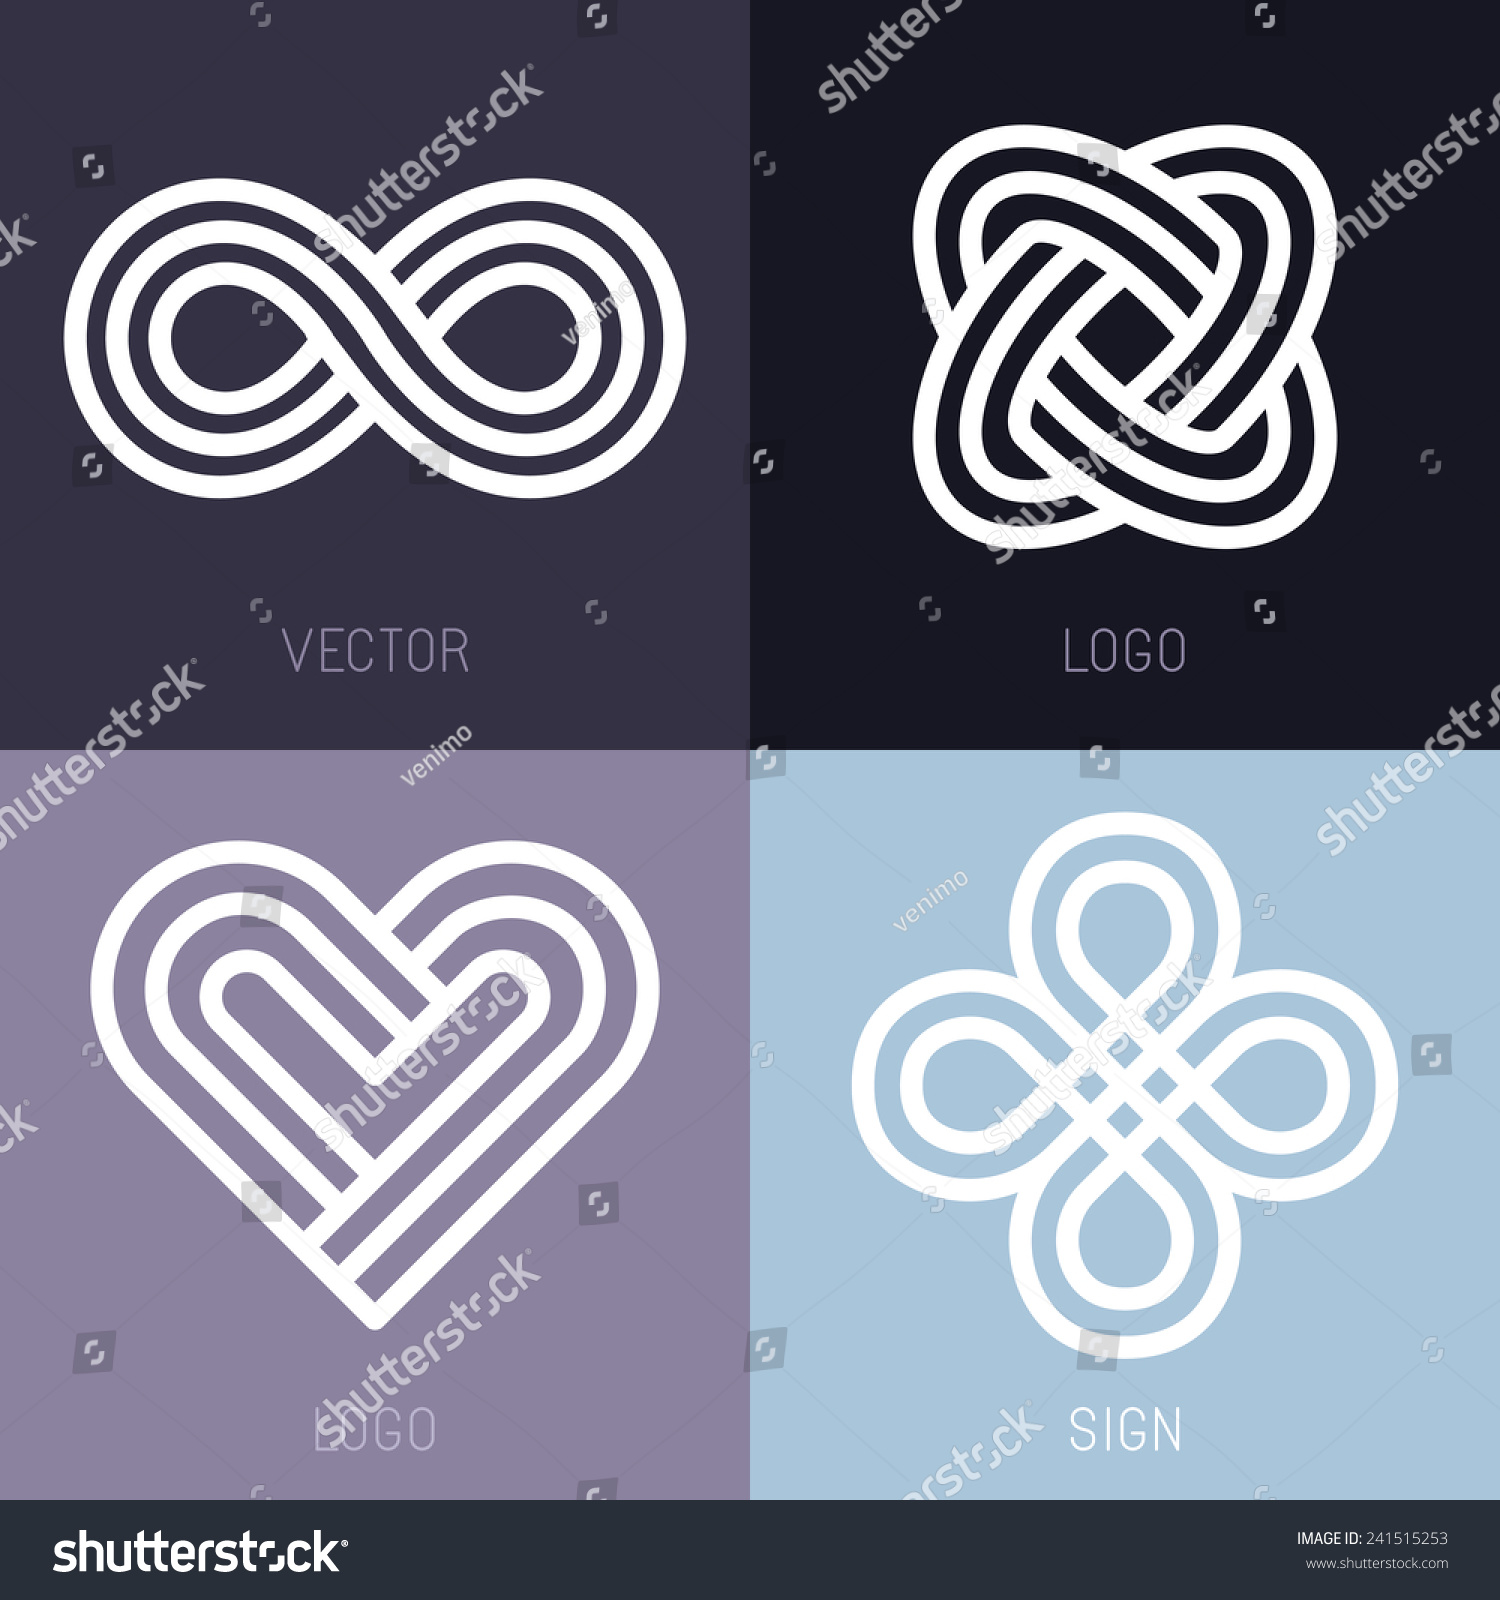 Graphic Design Elements Line : Vector set abstract line logos infinity stock